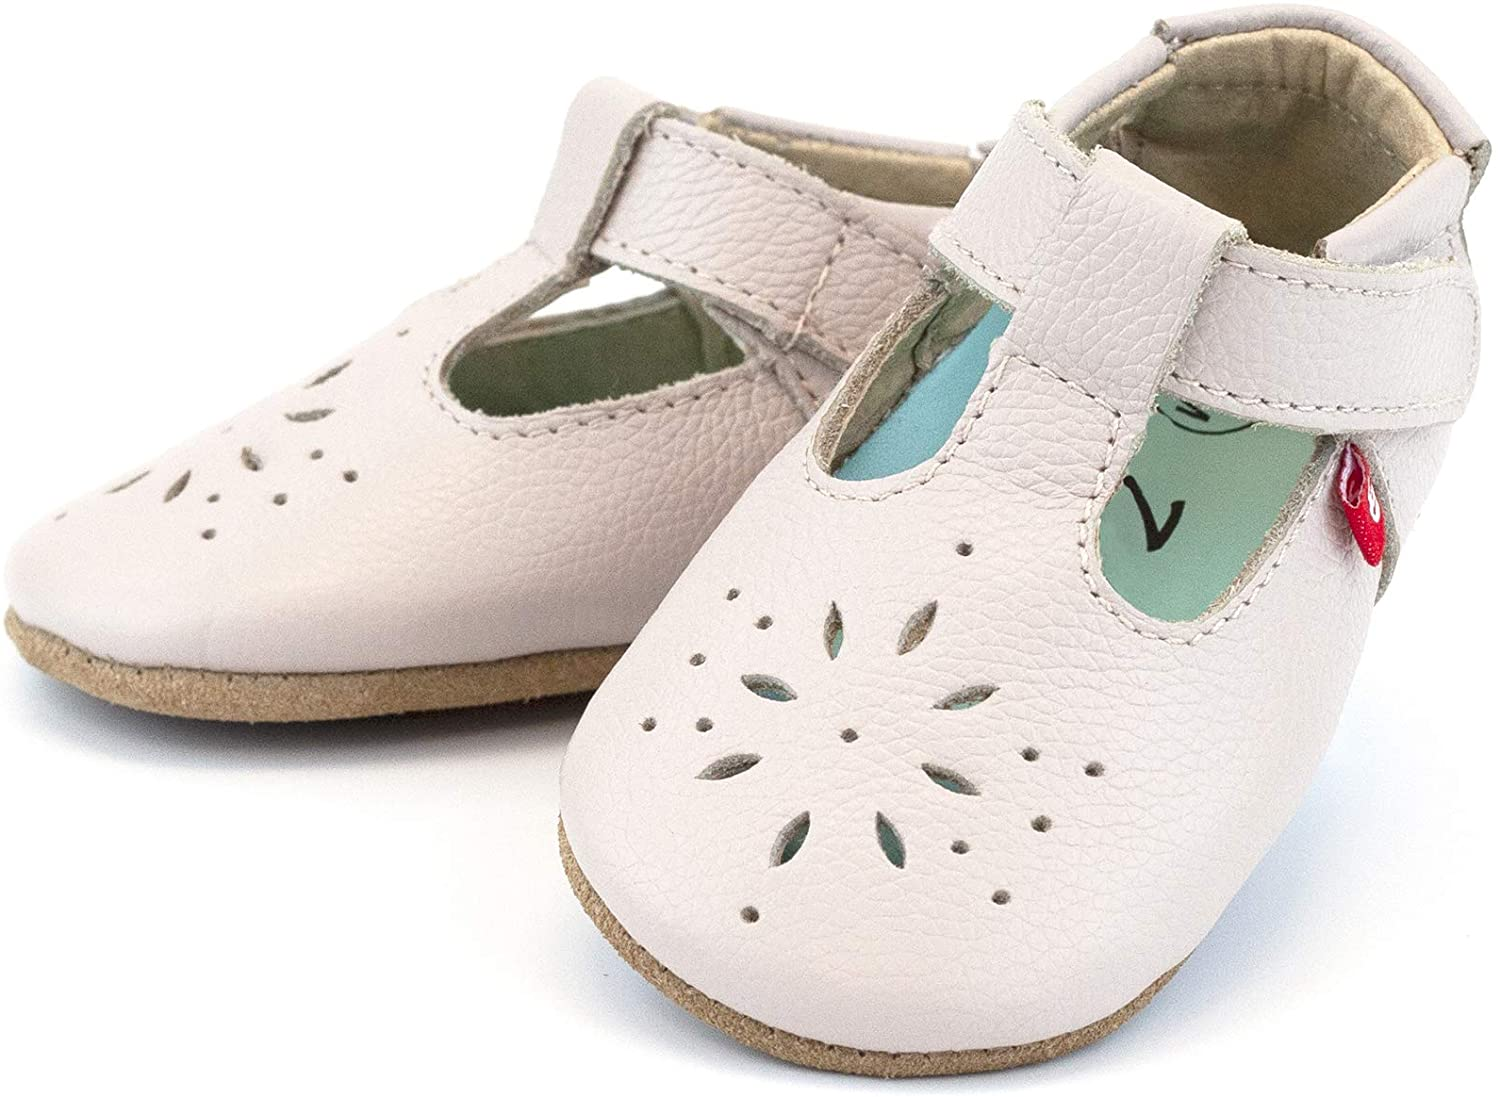 Zutano Easy On Leather Mary Jane Baby Shoes, Anti-Slip and Soft Sole